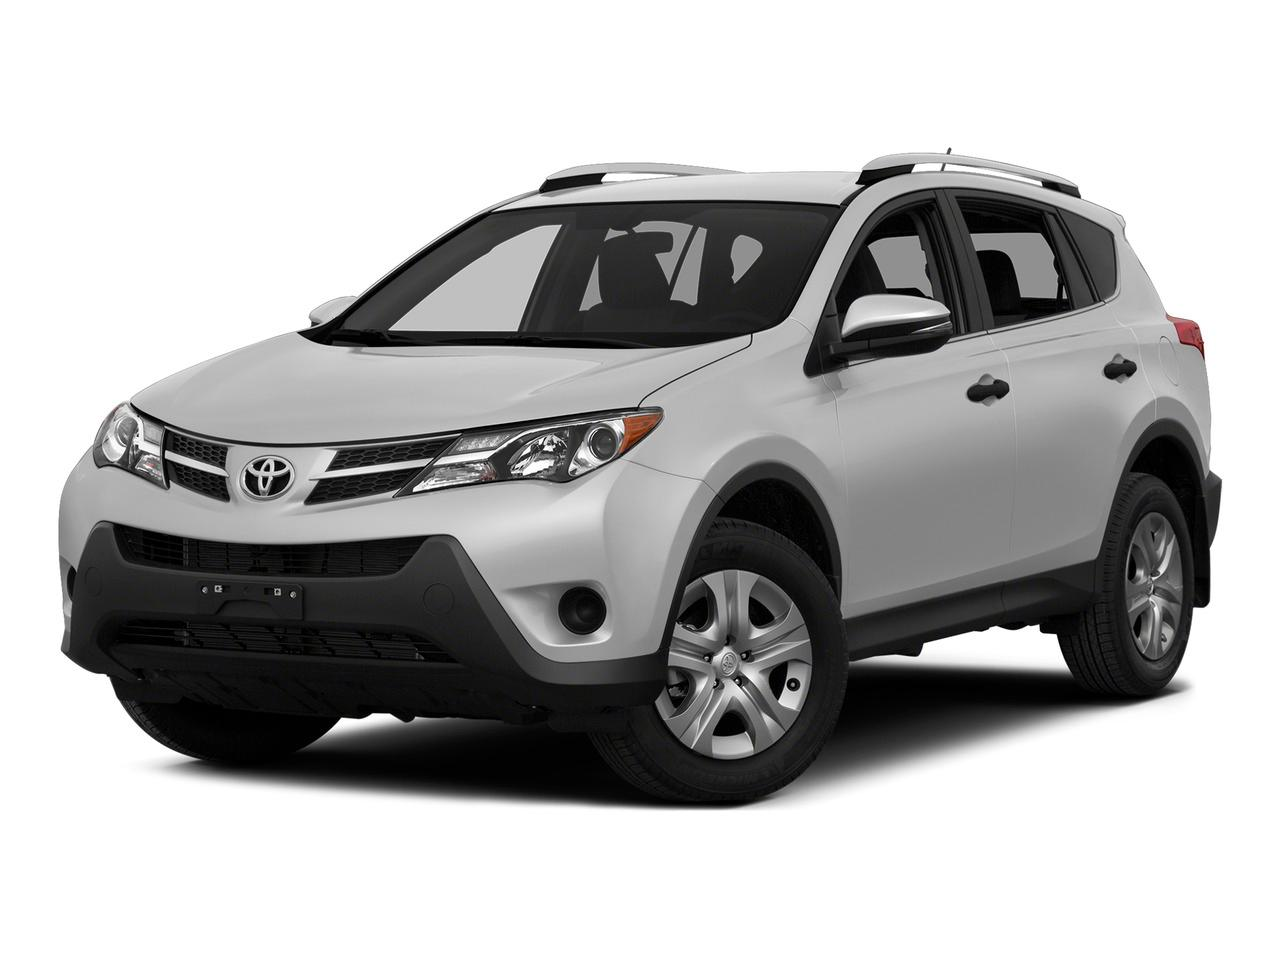 2015 Toyota RAV4 Vehicle Photo in Cape May Court House, NJ 08210